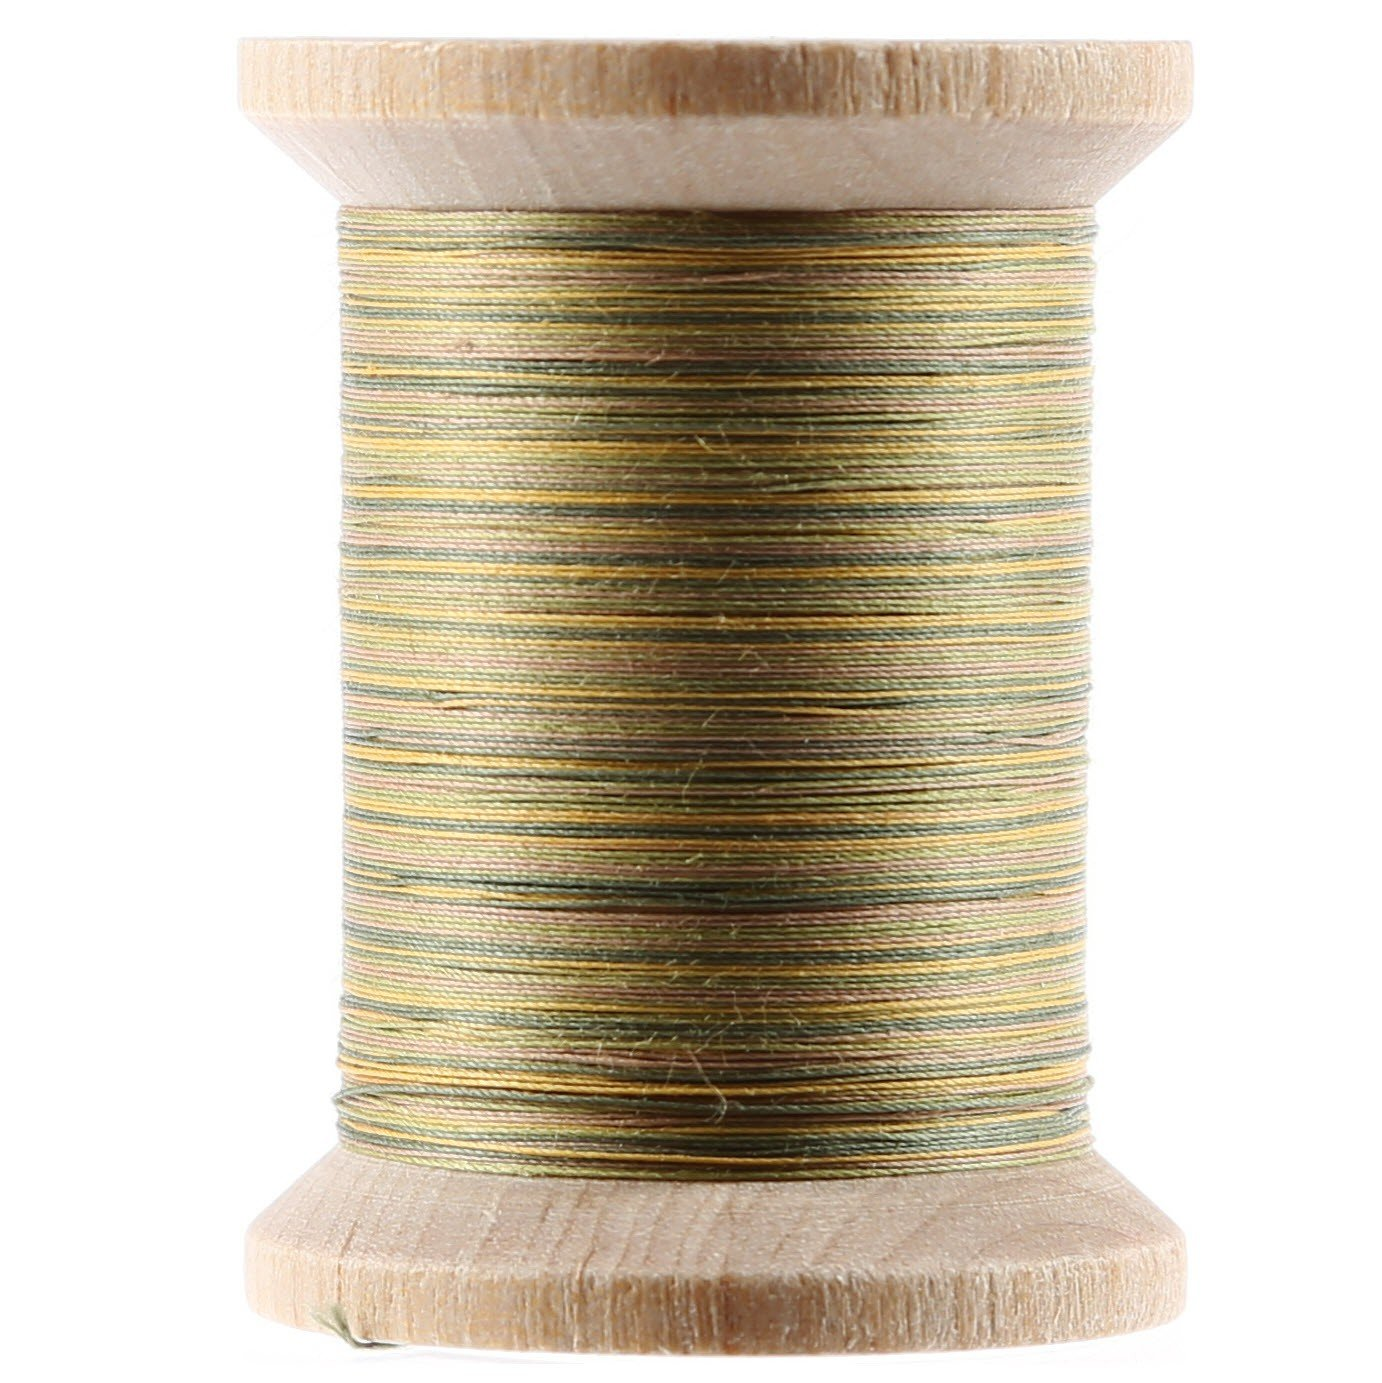 Variegated Cotton Hand Quilting Thread 400yds Green and Tan